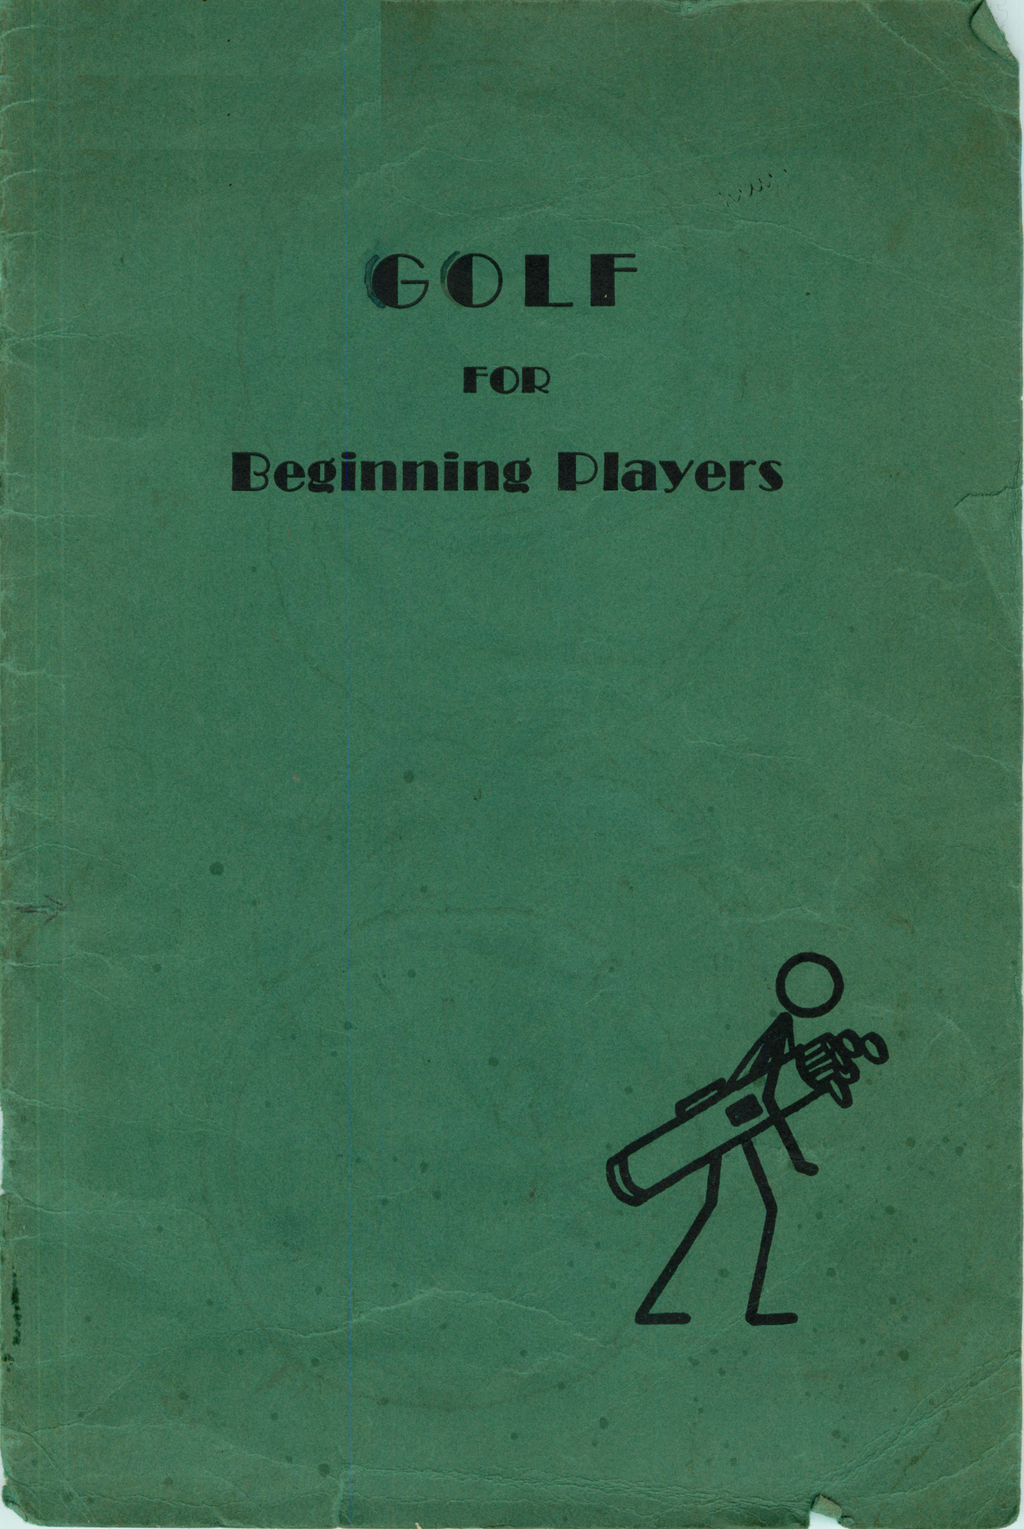 Golf for Beginning Players